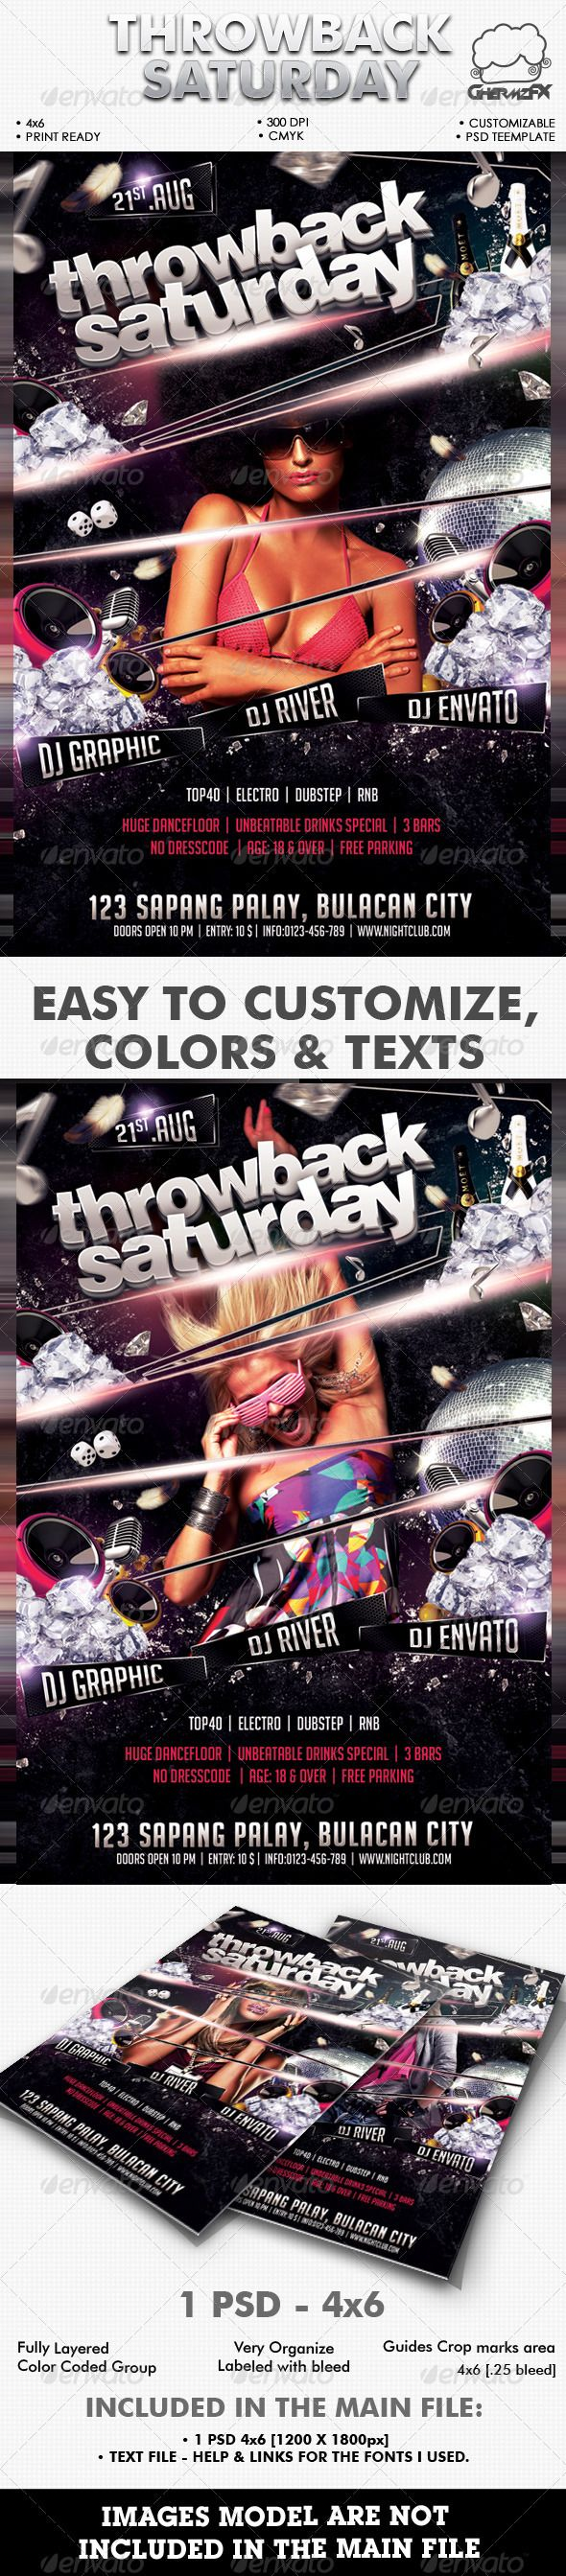 Throwback Saturday Flyer Template. Print-templates Flyers Events. For better visibility amazing, black, club, colorful, creative, dance, disco, disco ball, drinks, electro, event, flyer, girl, glow, lights, mashups, modern, music, night, party, poster, rnb, template, throwback, and top40.